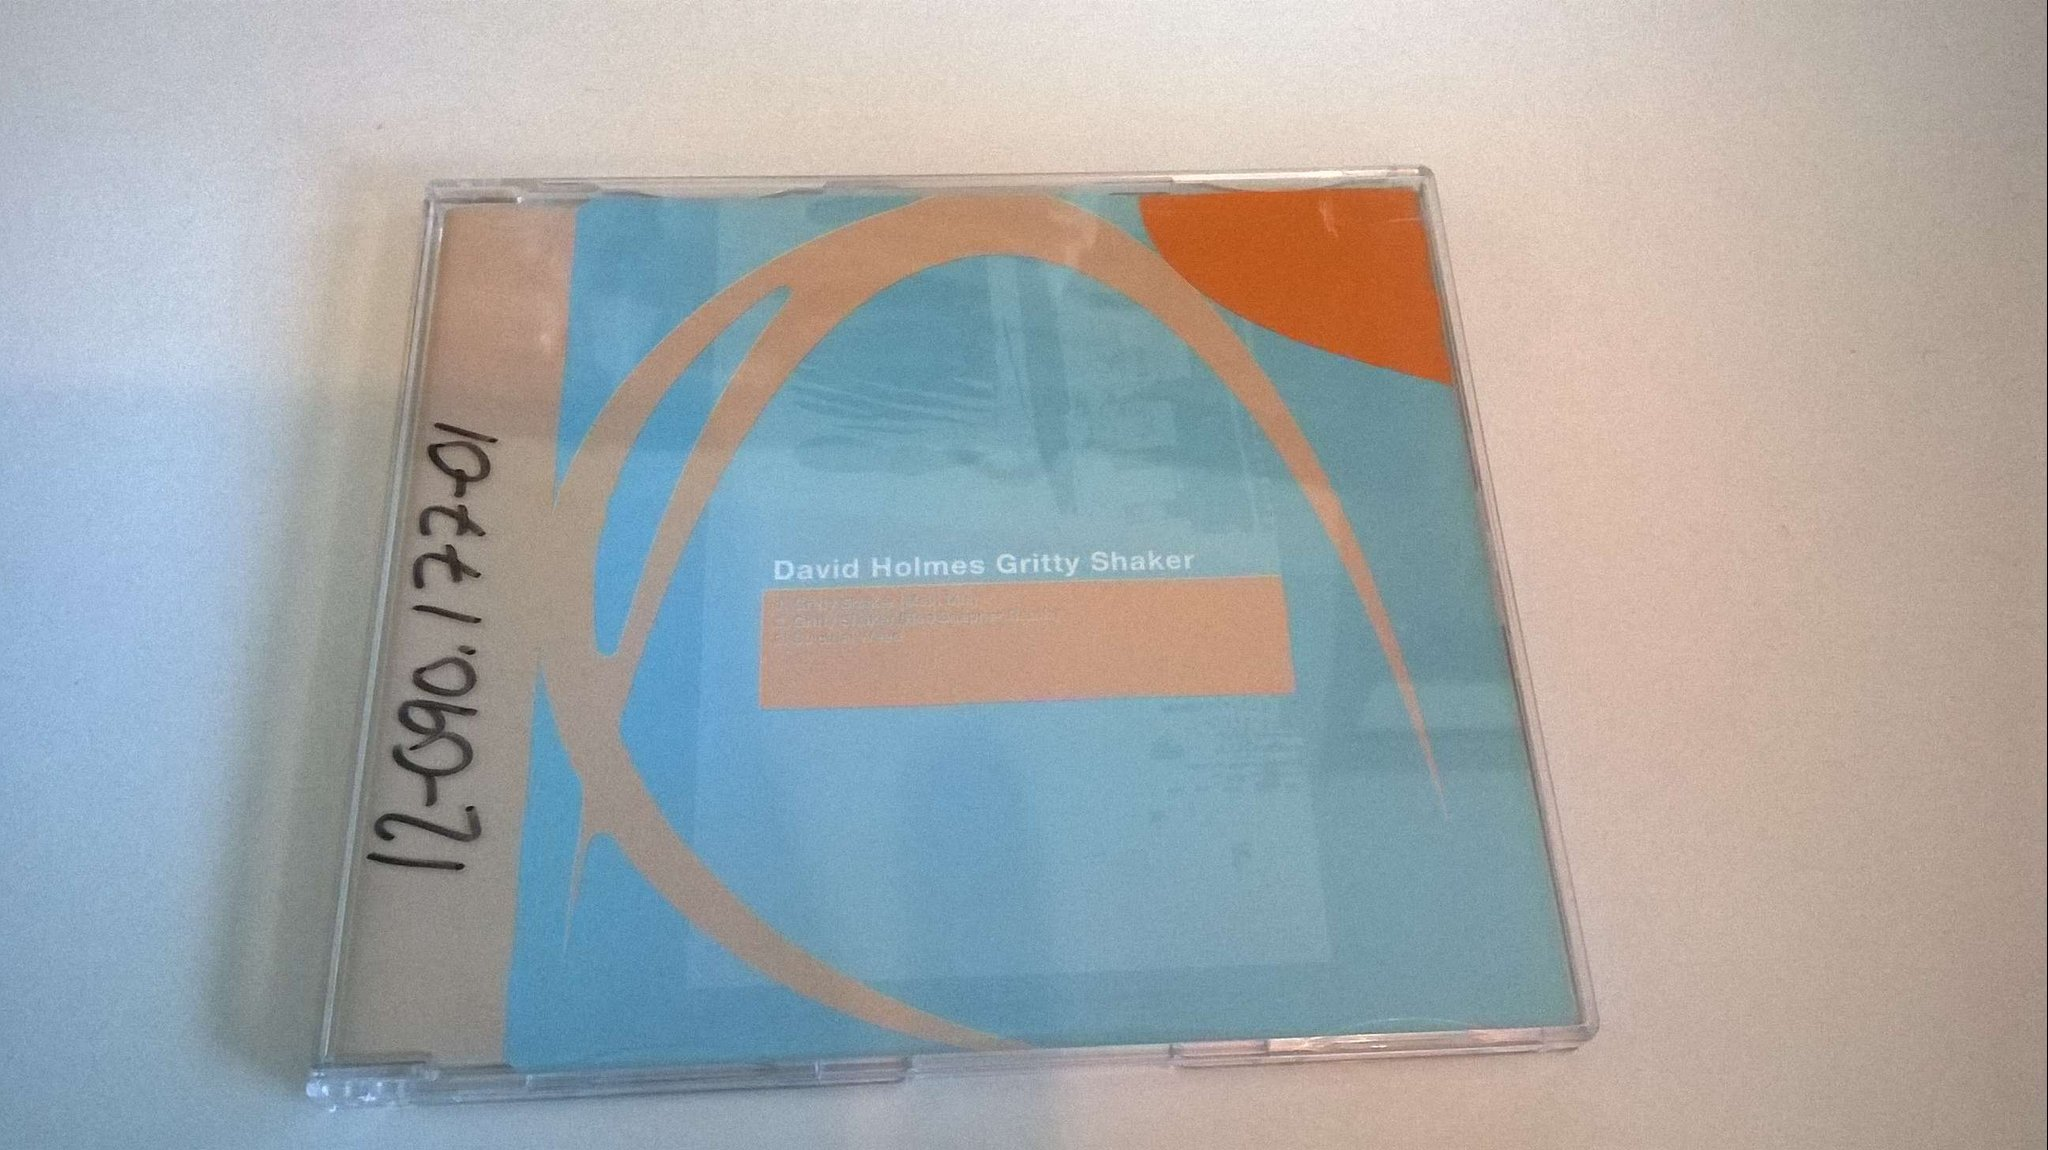 David Holmes - Gritty Shaker, CD